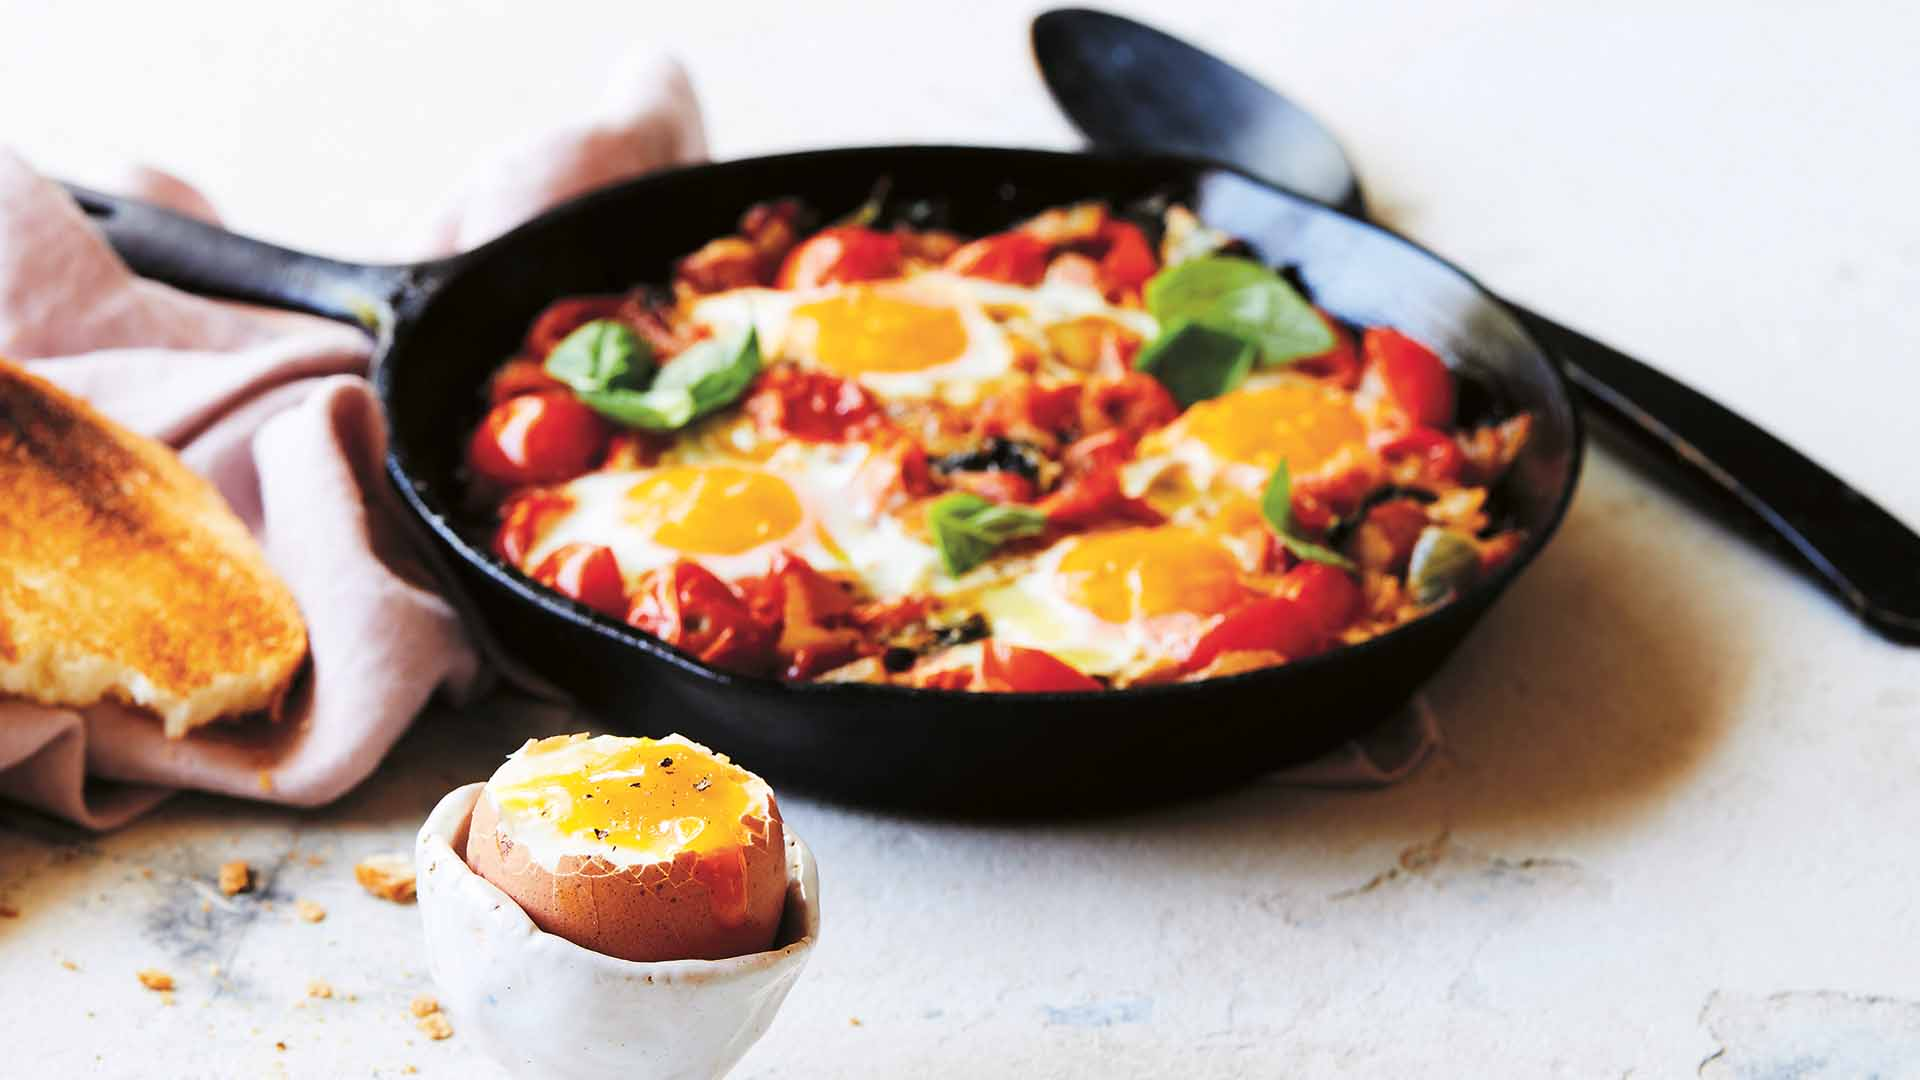 be_Stove-baked weekend eggs recipe